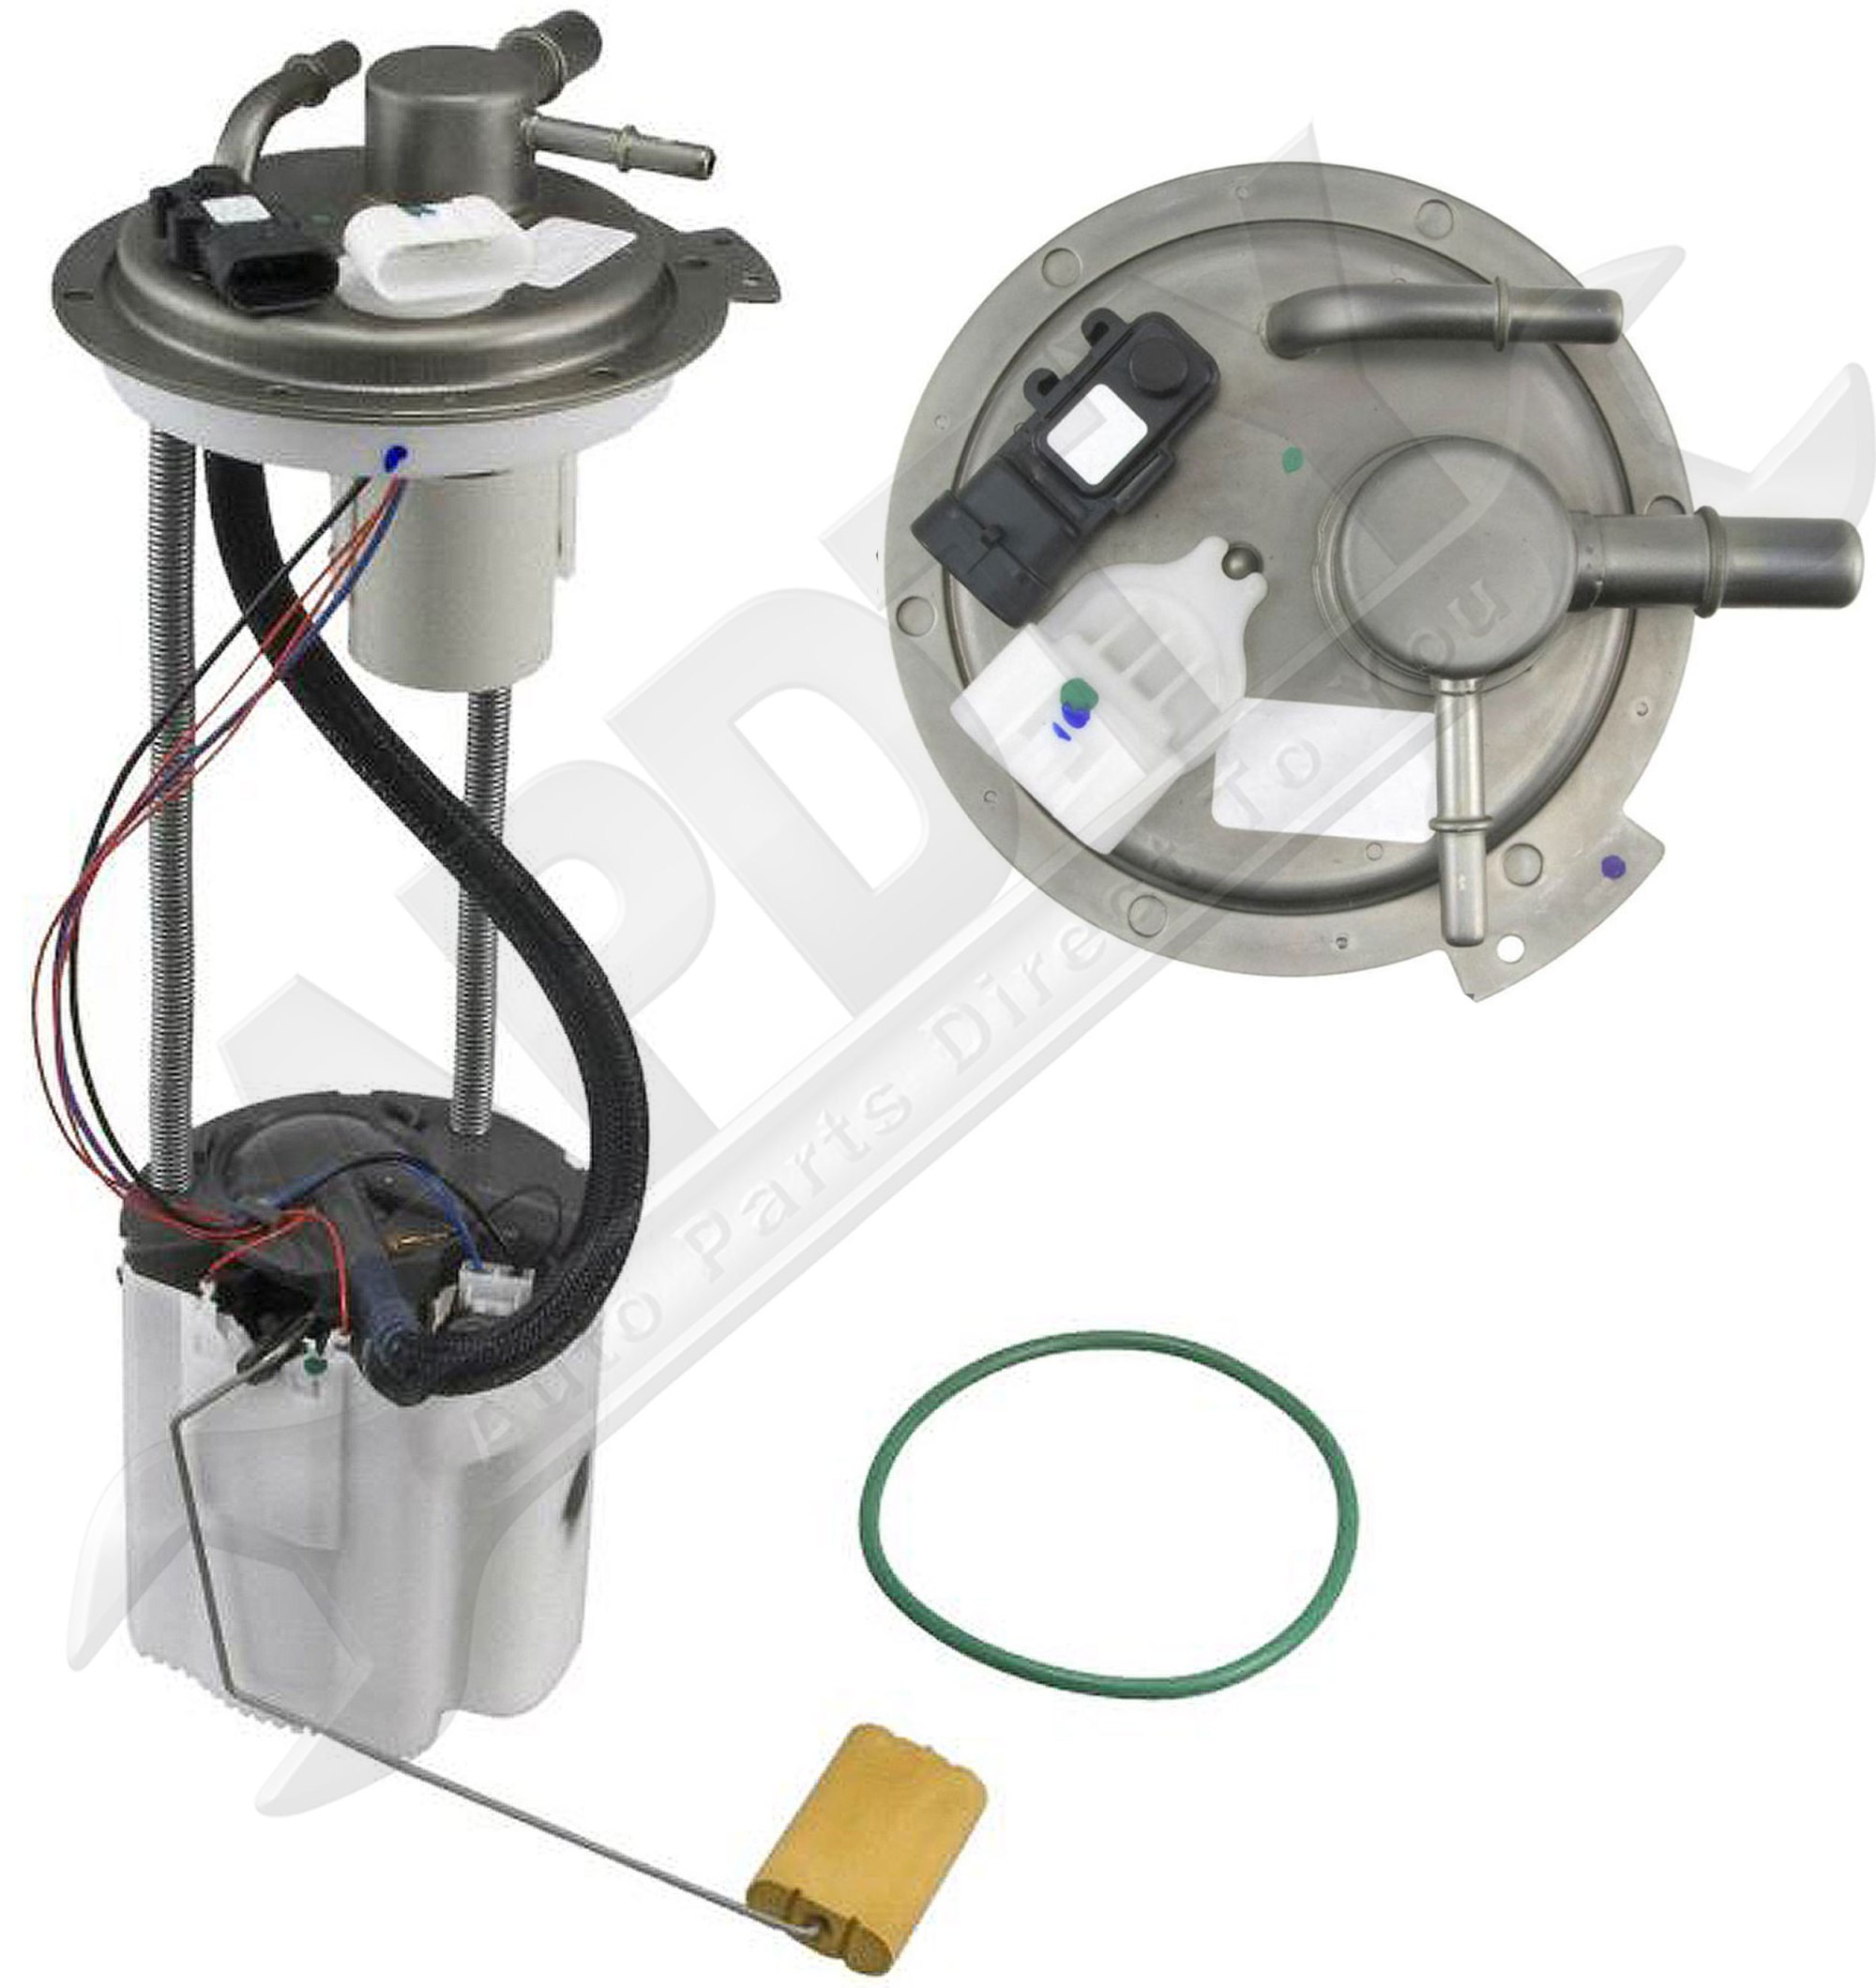 hight resolution of d tails apdty 19208956 fuel pump module sending unit complete assembly